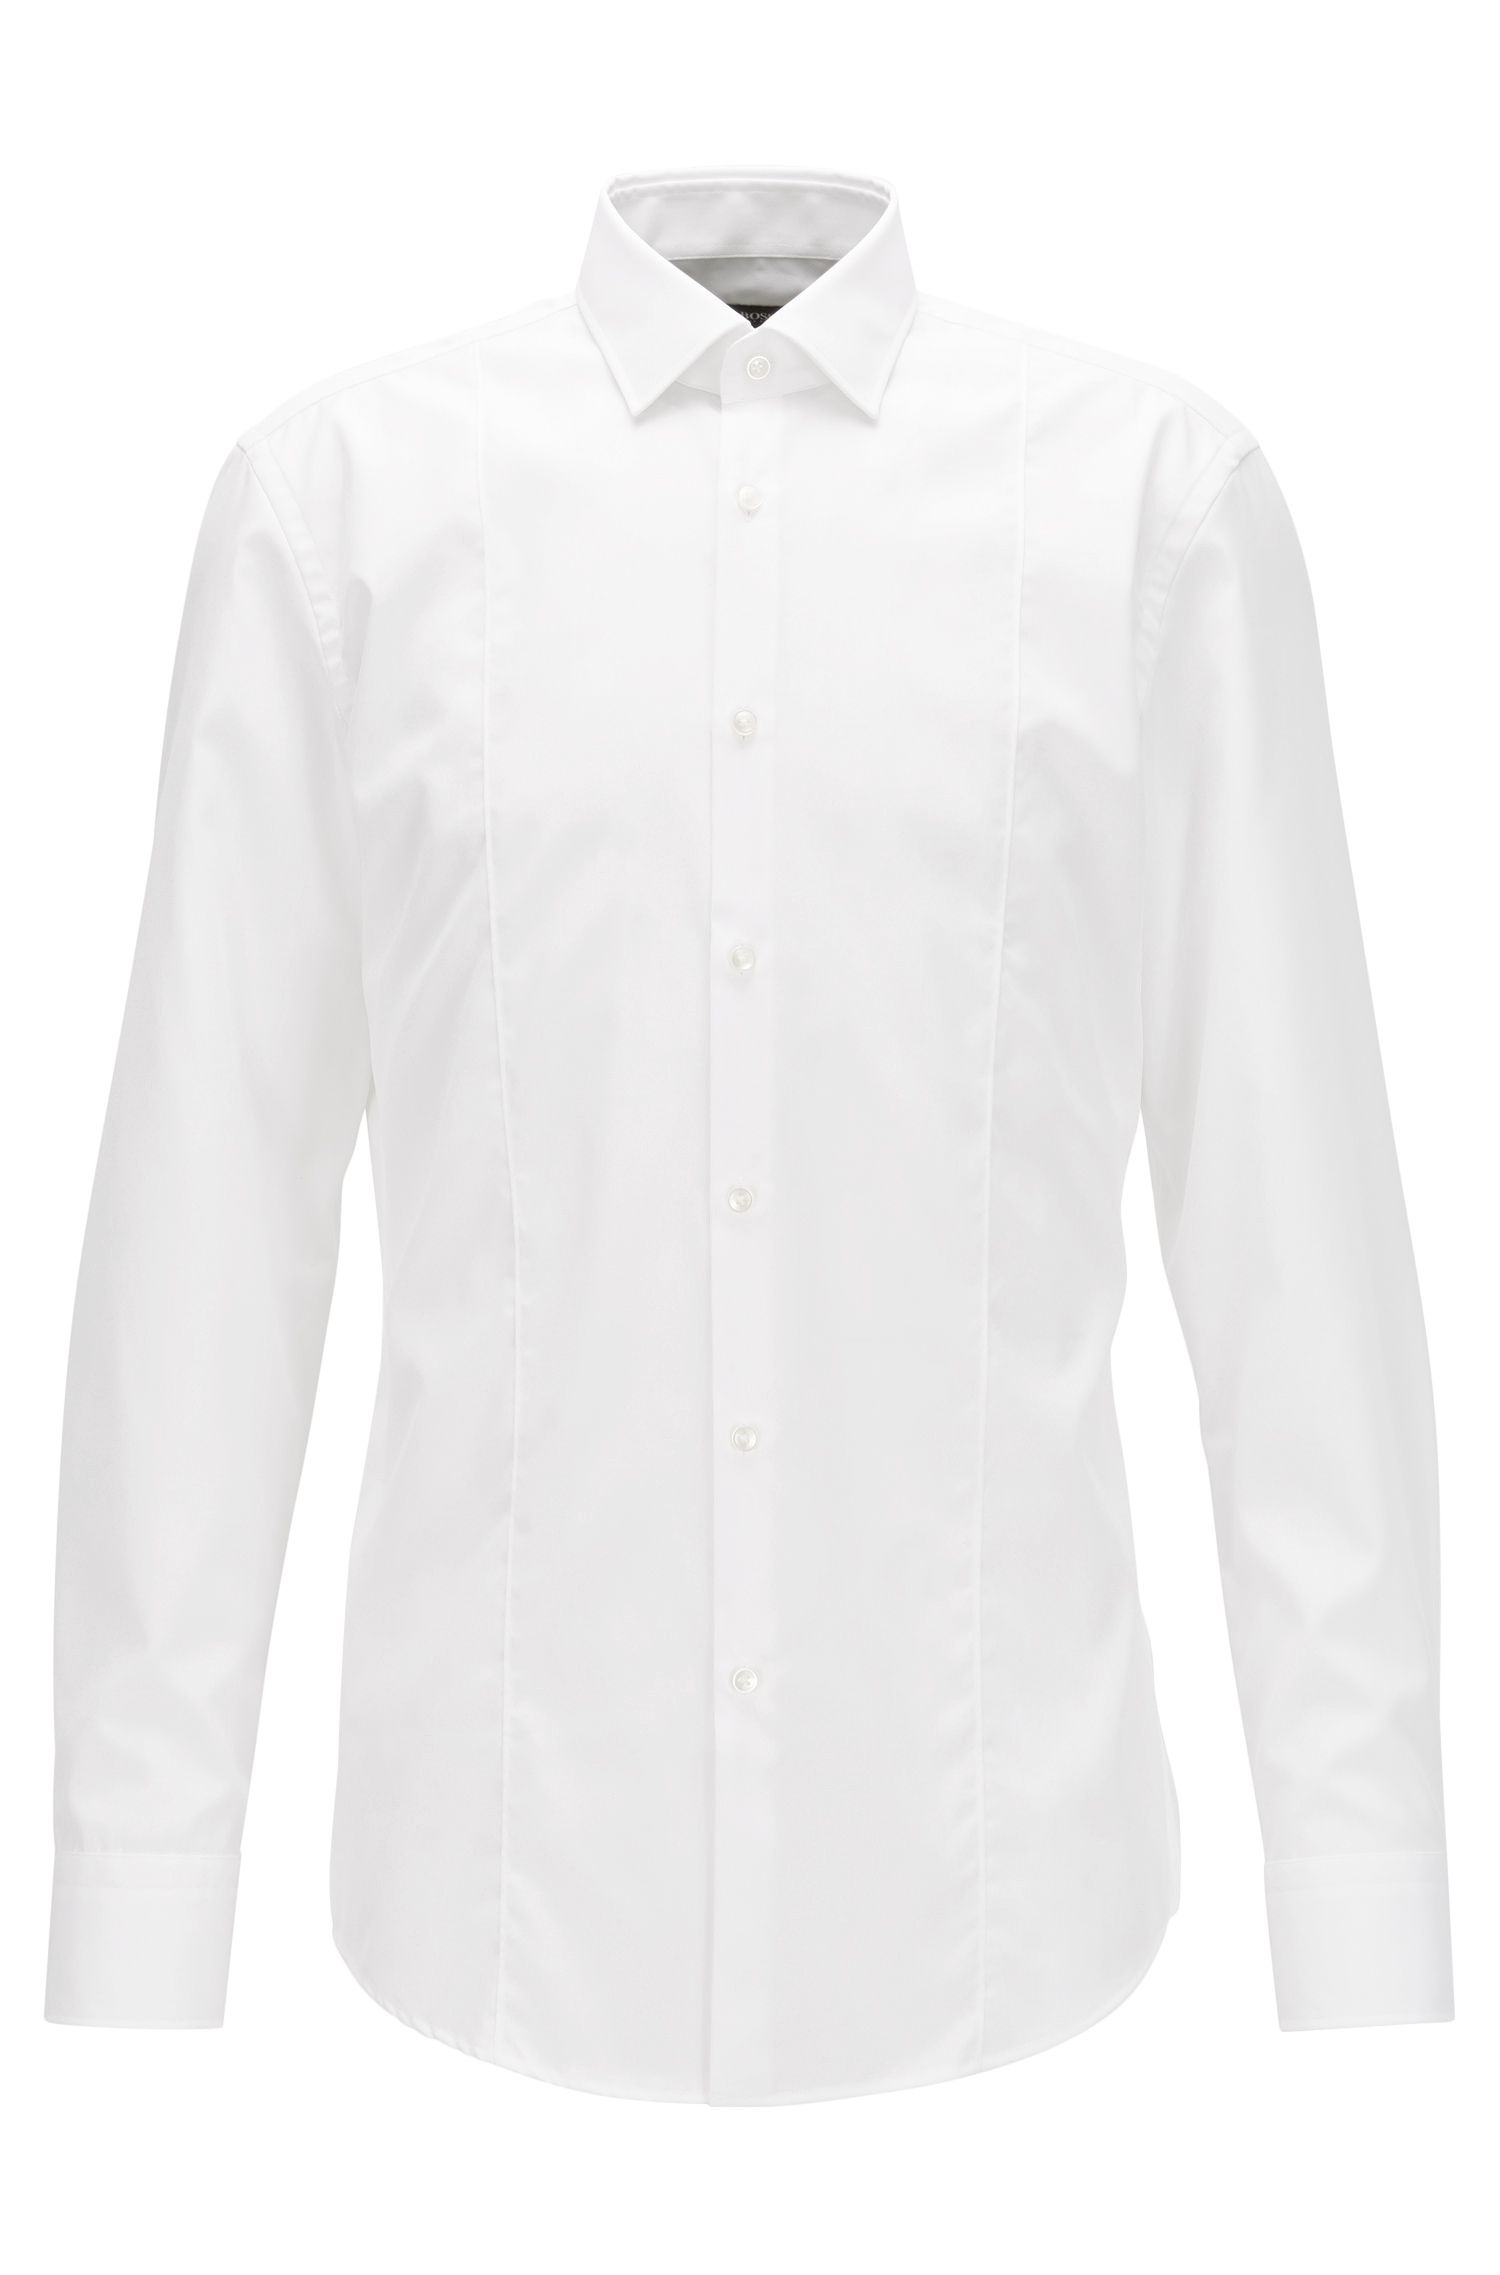 Camicia slim fit a pannelli in cotone facile da stirare